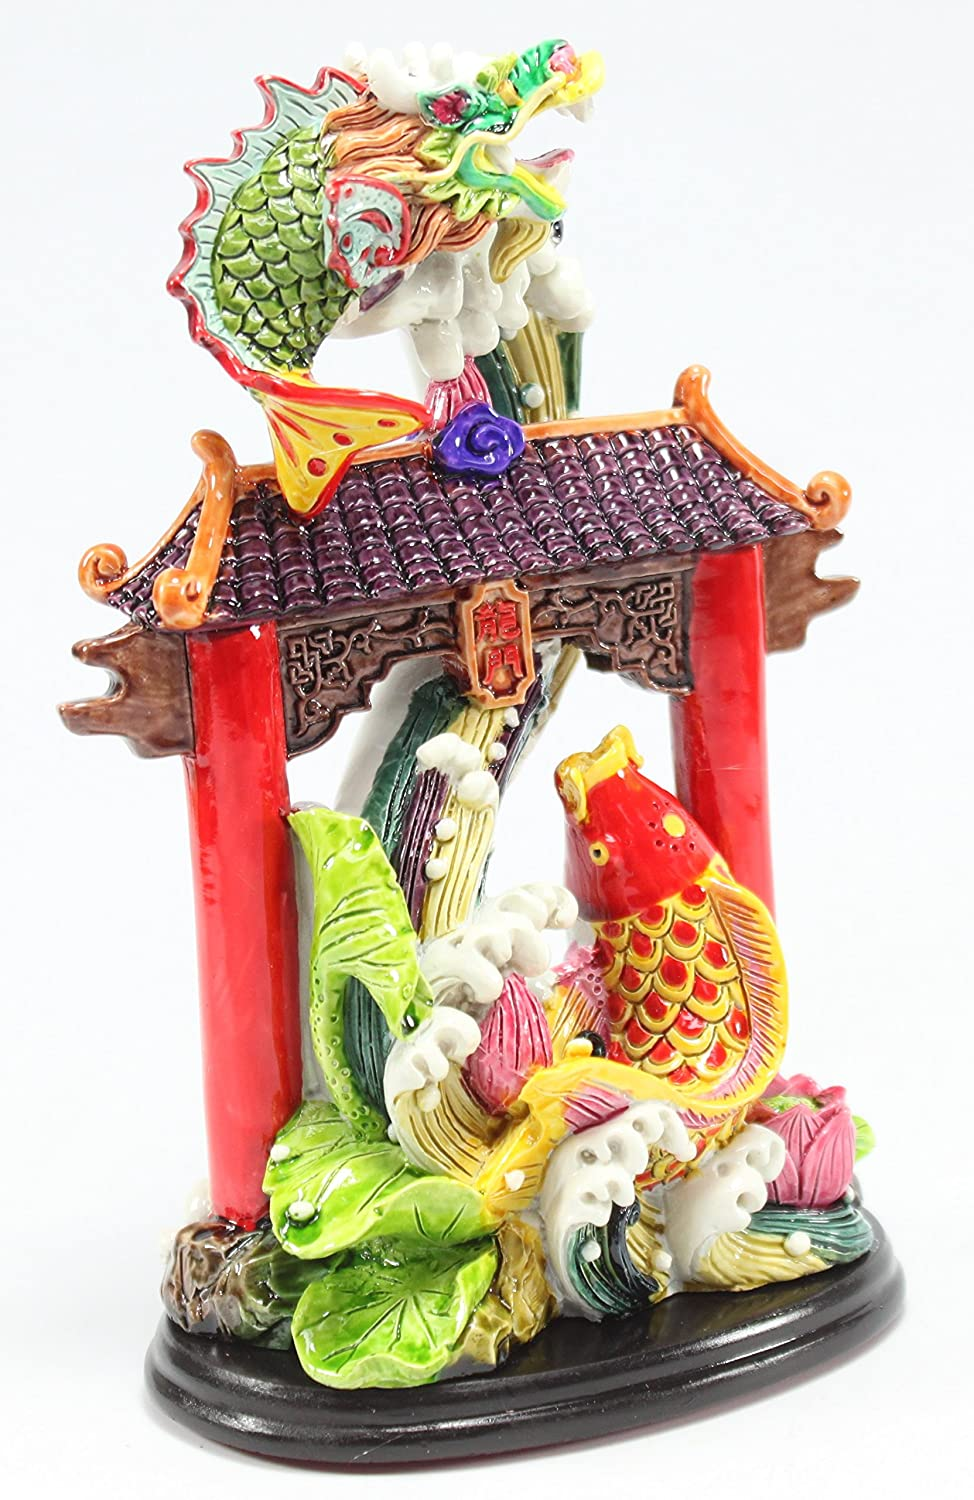 Dragon Gate Waterfall LY027 Feng Shui Dragon Gate Waterfall for Courage Achievement Success /& Perseverance Statues Figurine Wealth Lucky Figurine Home Decor Gift US Seller